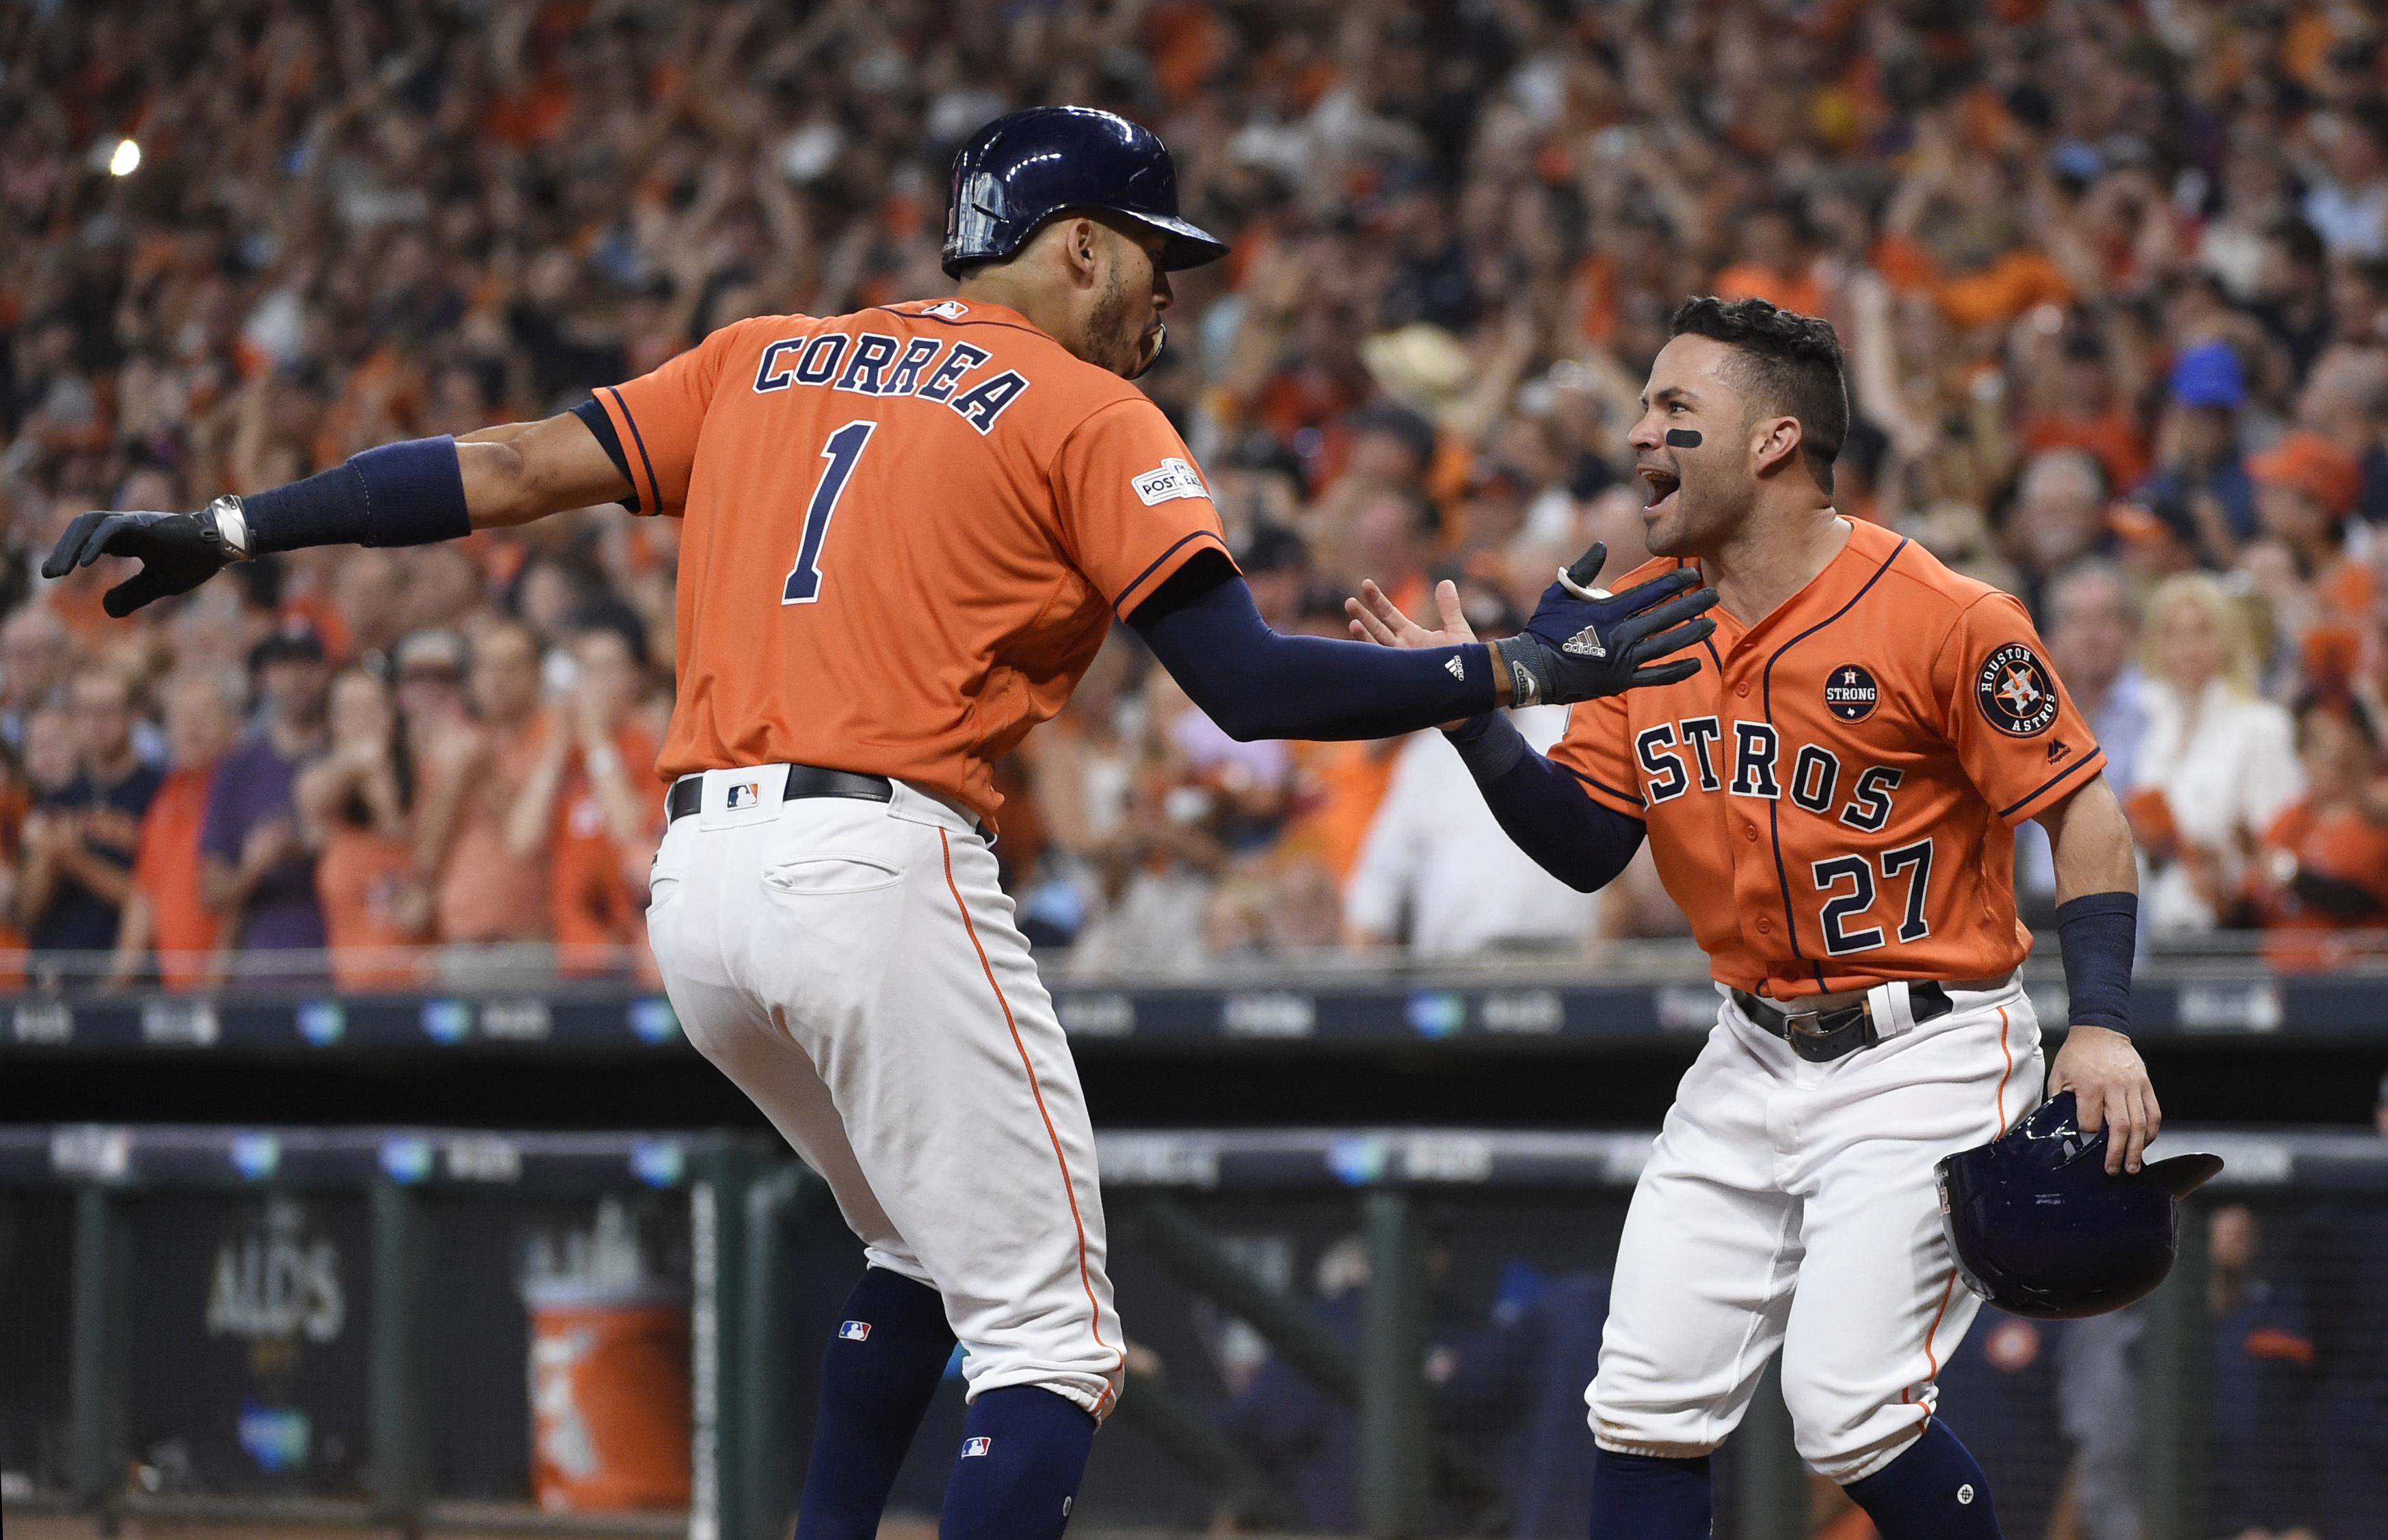 <div class='meta'><div class='origin-logo' data-origin='AP'></div><span class='caption-text' data-credit='Eric Christian Smith'>Houston Astros' Carlos Correa (1) celebrates his two-run home run with teammate Jose Altuve (27) during the first inning in Game 2.</span></div>